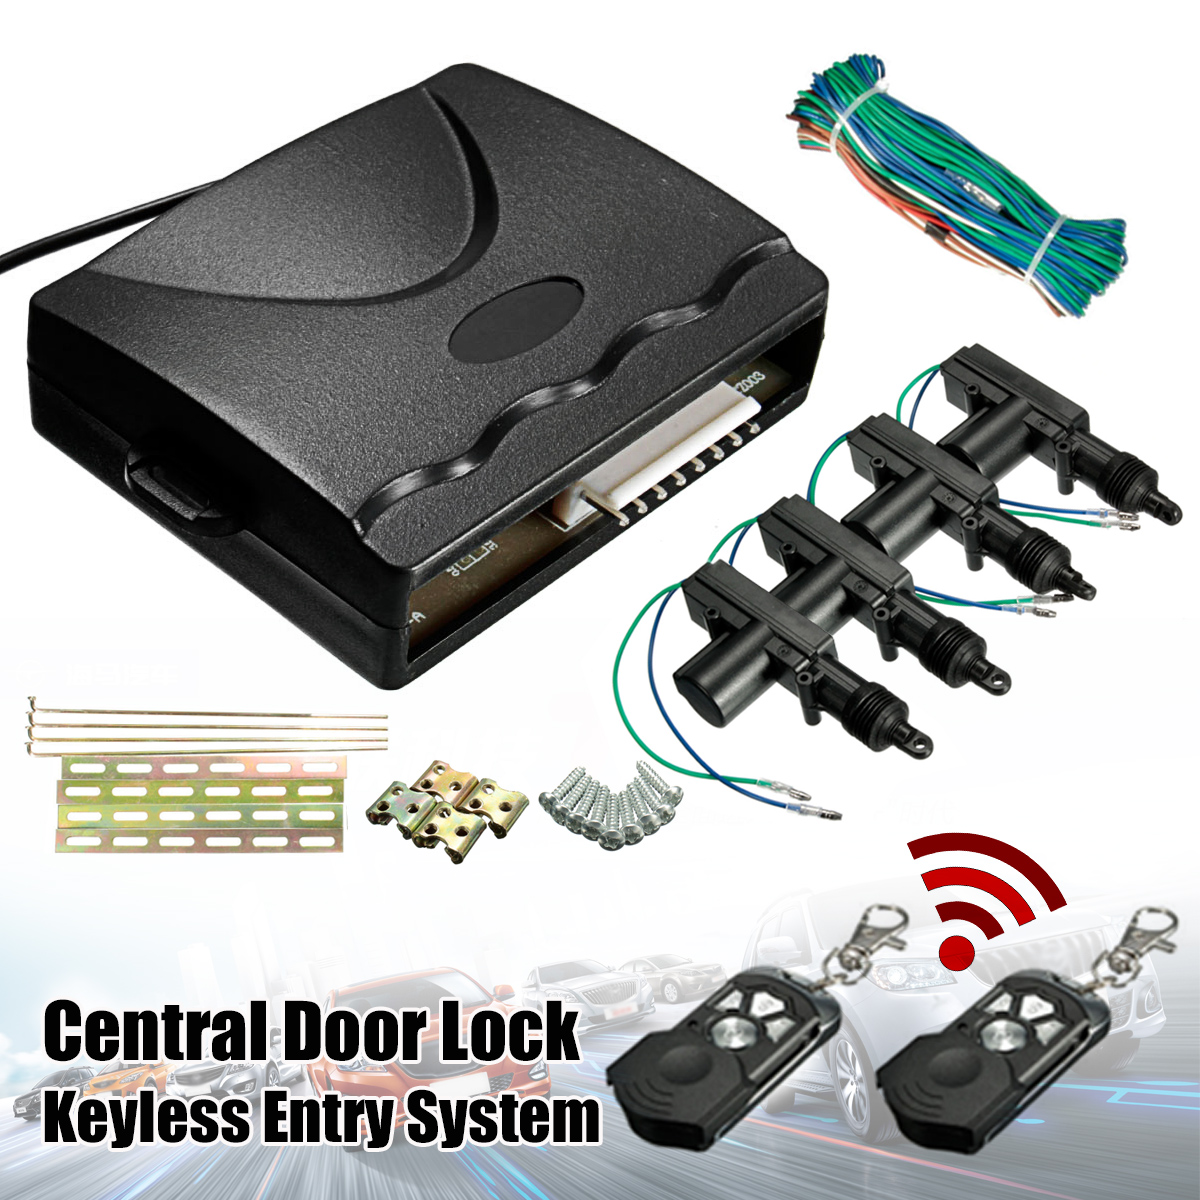 360 Degree Rotation Universal Car Auto Remote Central Fob Alarm Security Kit 2 4 Door Bracket Locking Keyless Entry System